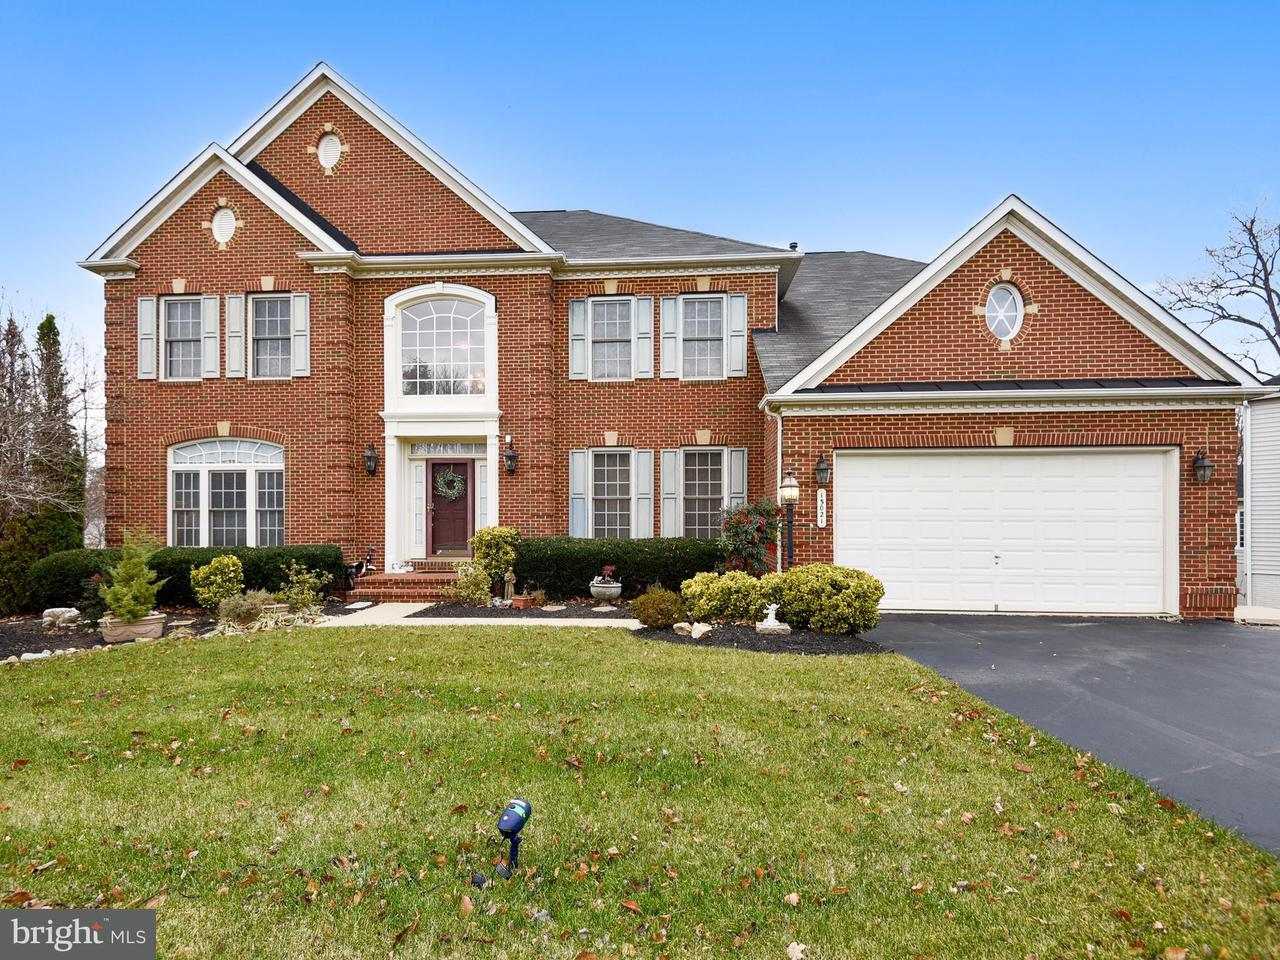 Single Family Home for Sale at 13021 Dunhill Drive 13021 Dunhill Drive Fairfax, Virginia 22030 United States